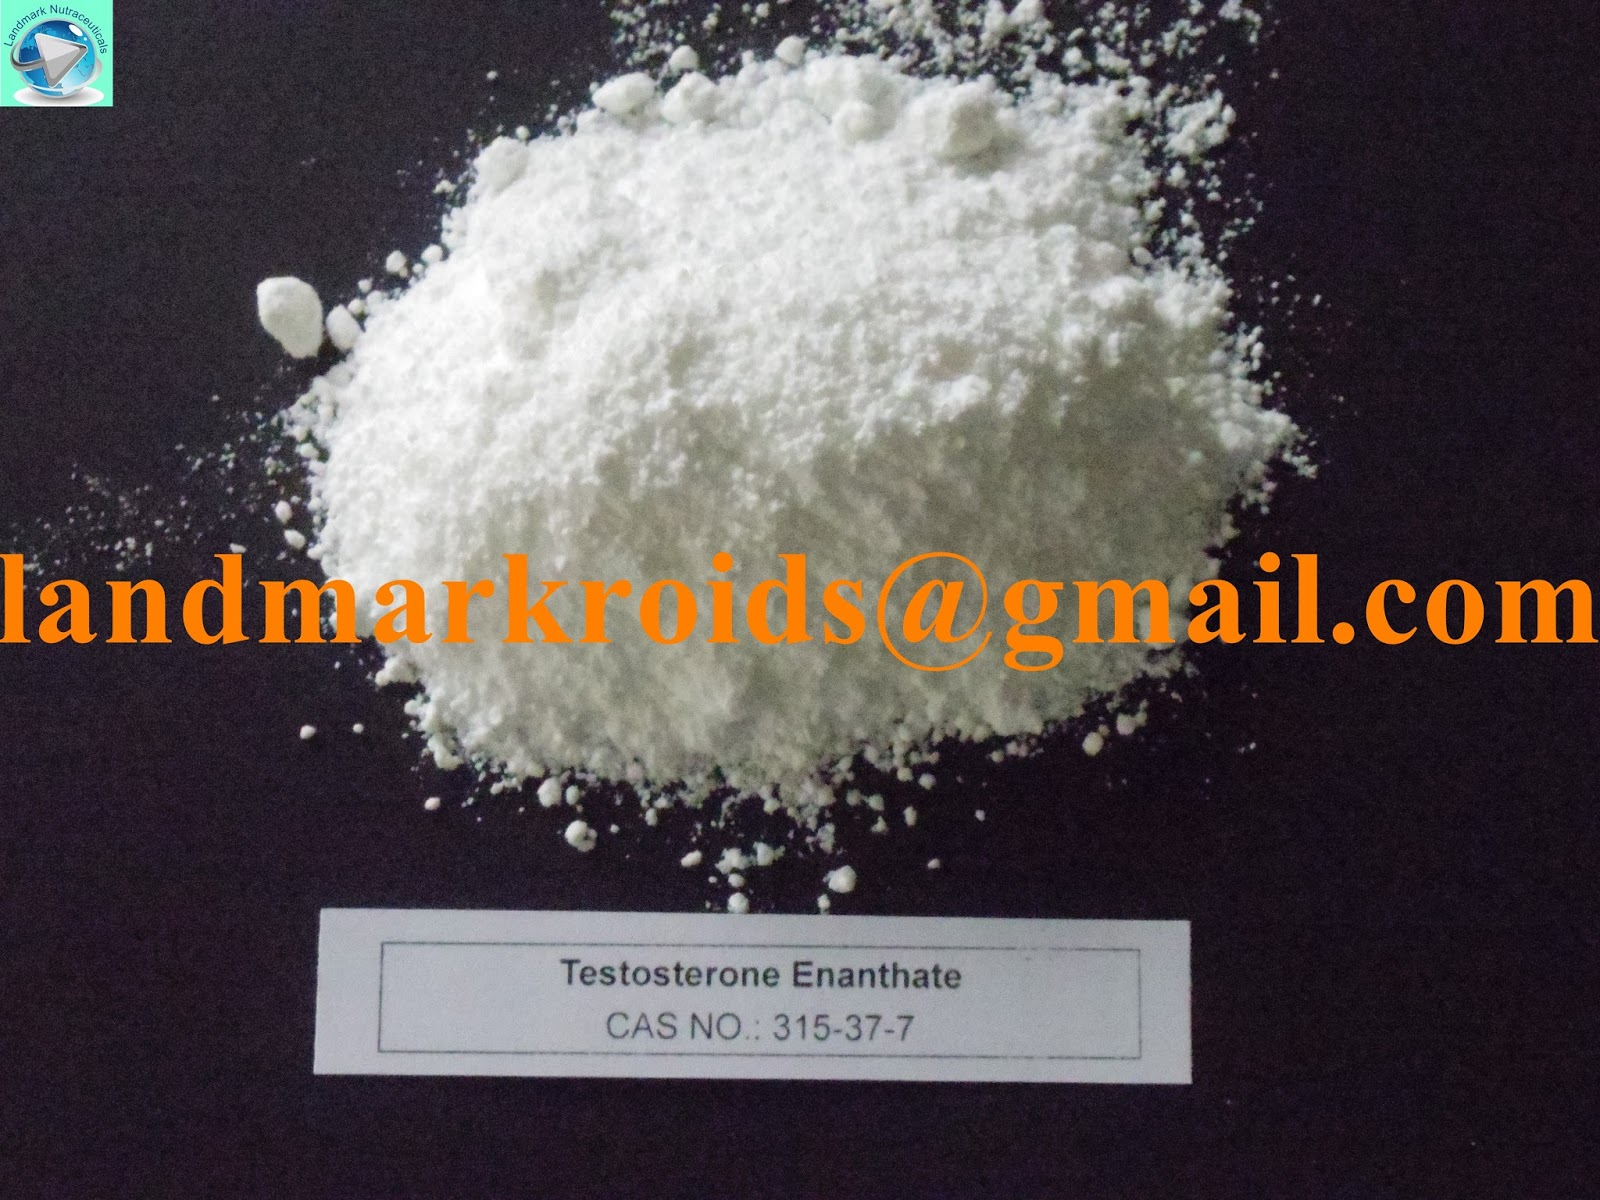 where can i buy steroid powders?: Buy Testosterone Enanthate